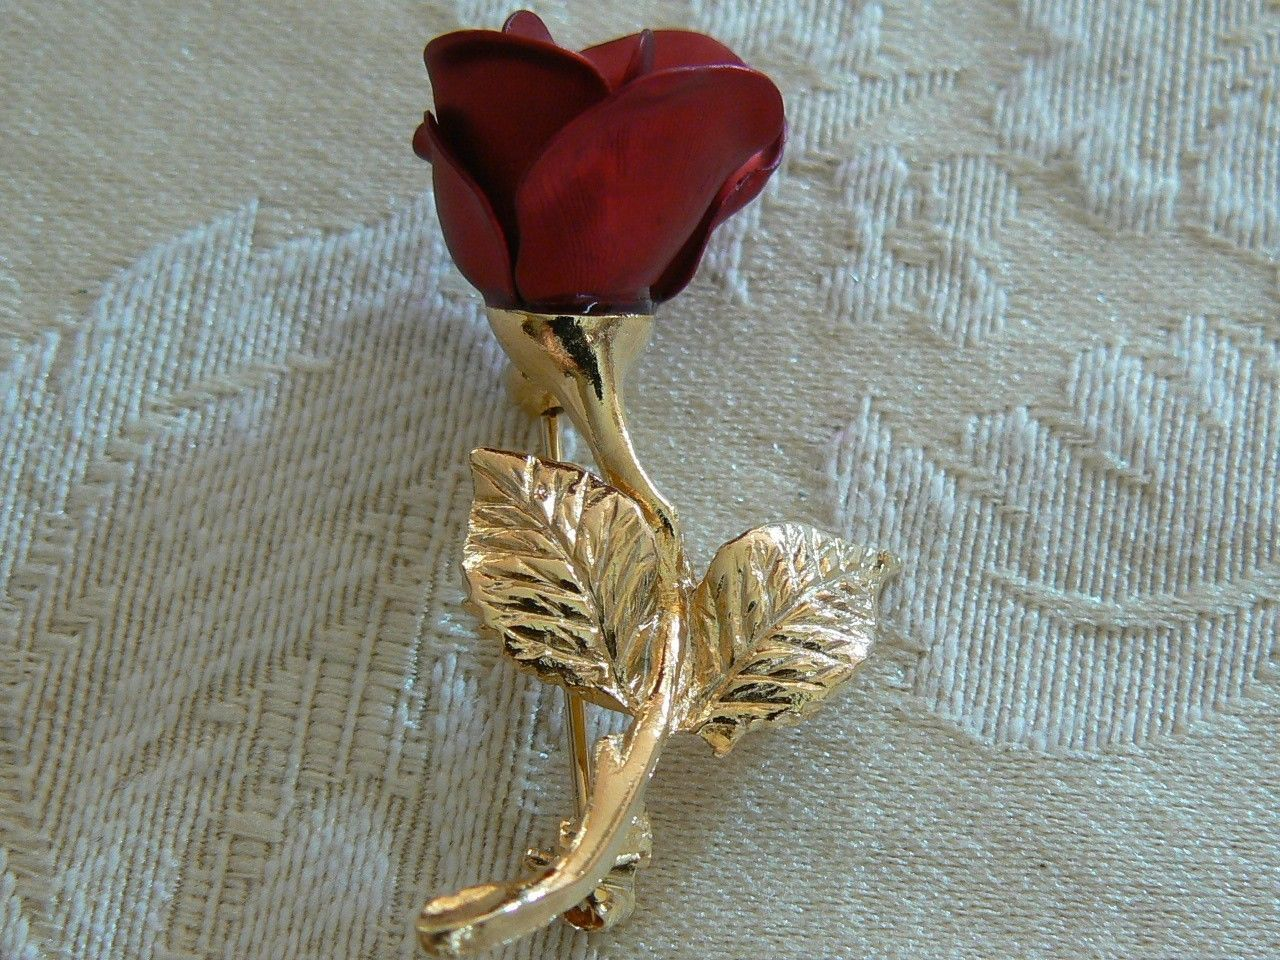 Avon Vintage Small Dainty Brushed Gold Tone Red Rose Stem Brooch